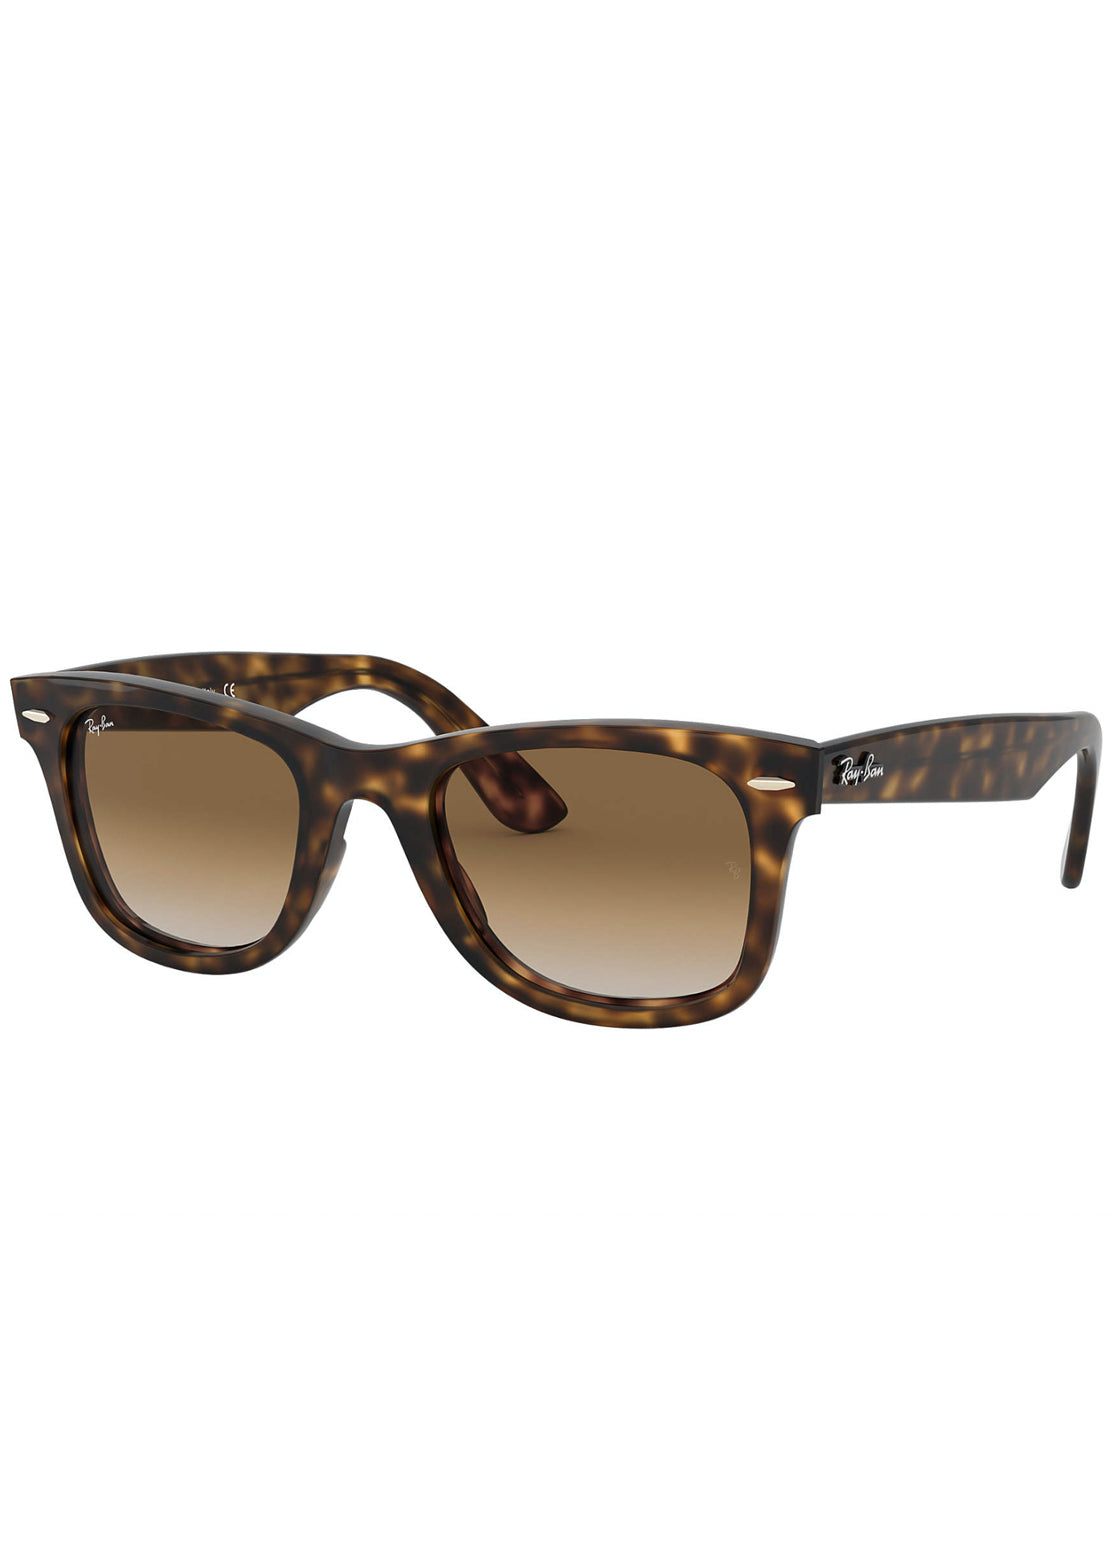 Ray-Ban Wayfarer Ease RB4340 Sunglasses Injected Tortoise/Light Brown Gradient